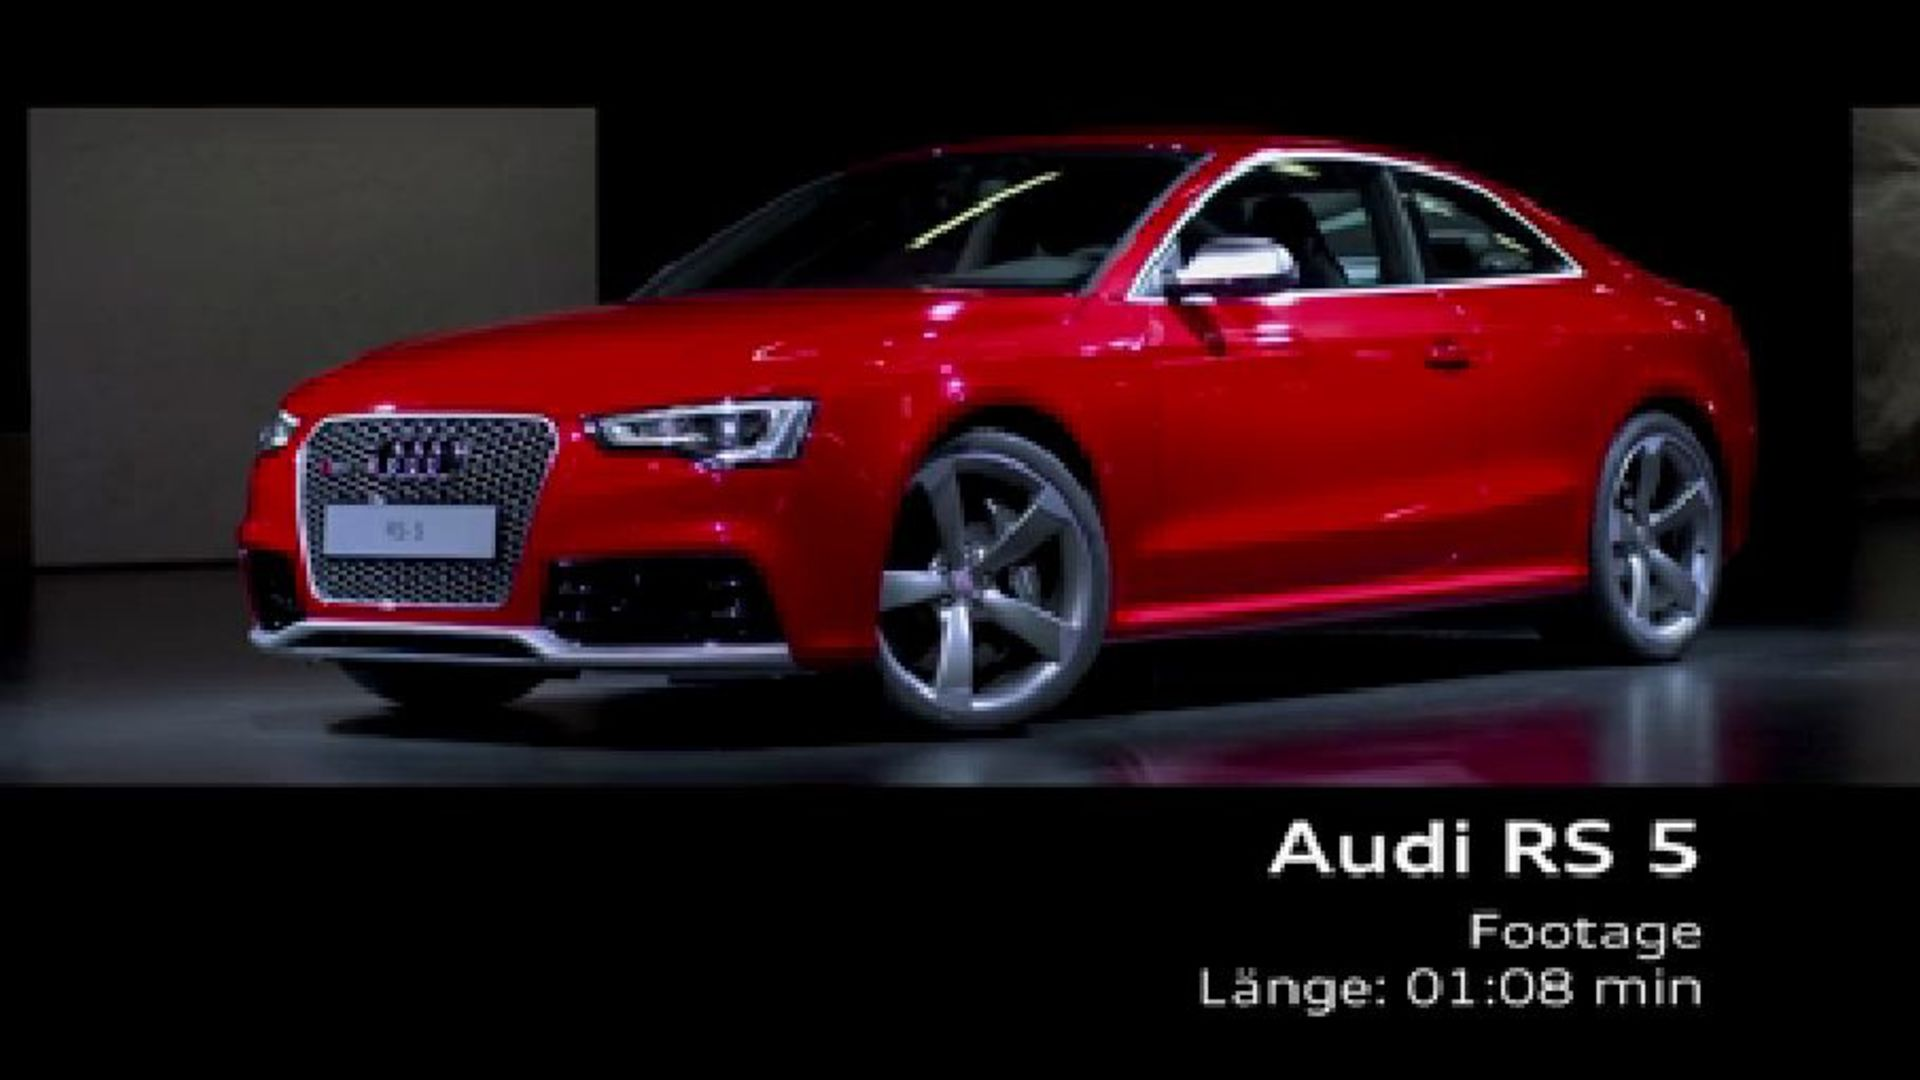 The Audi RS 5 Coupé - Footage